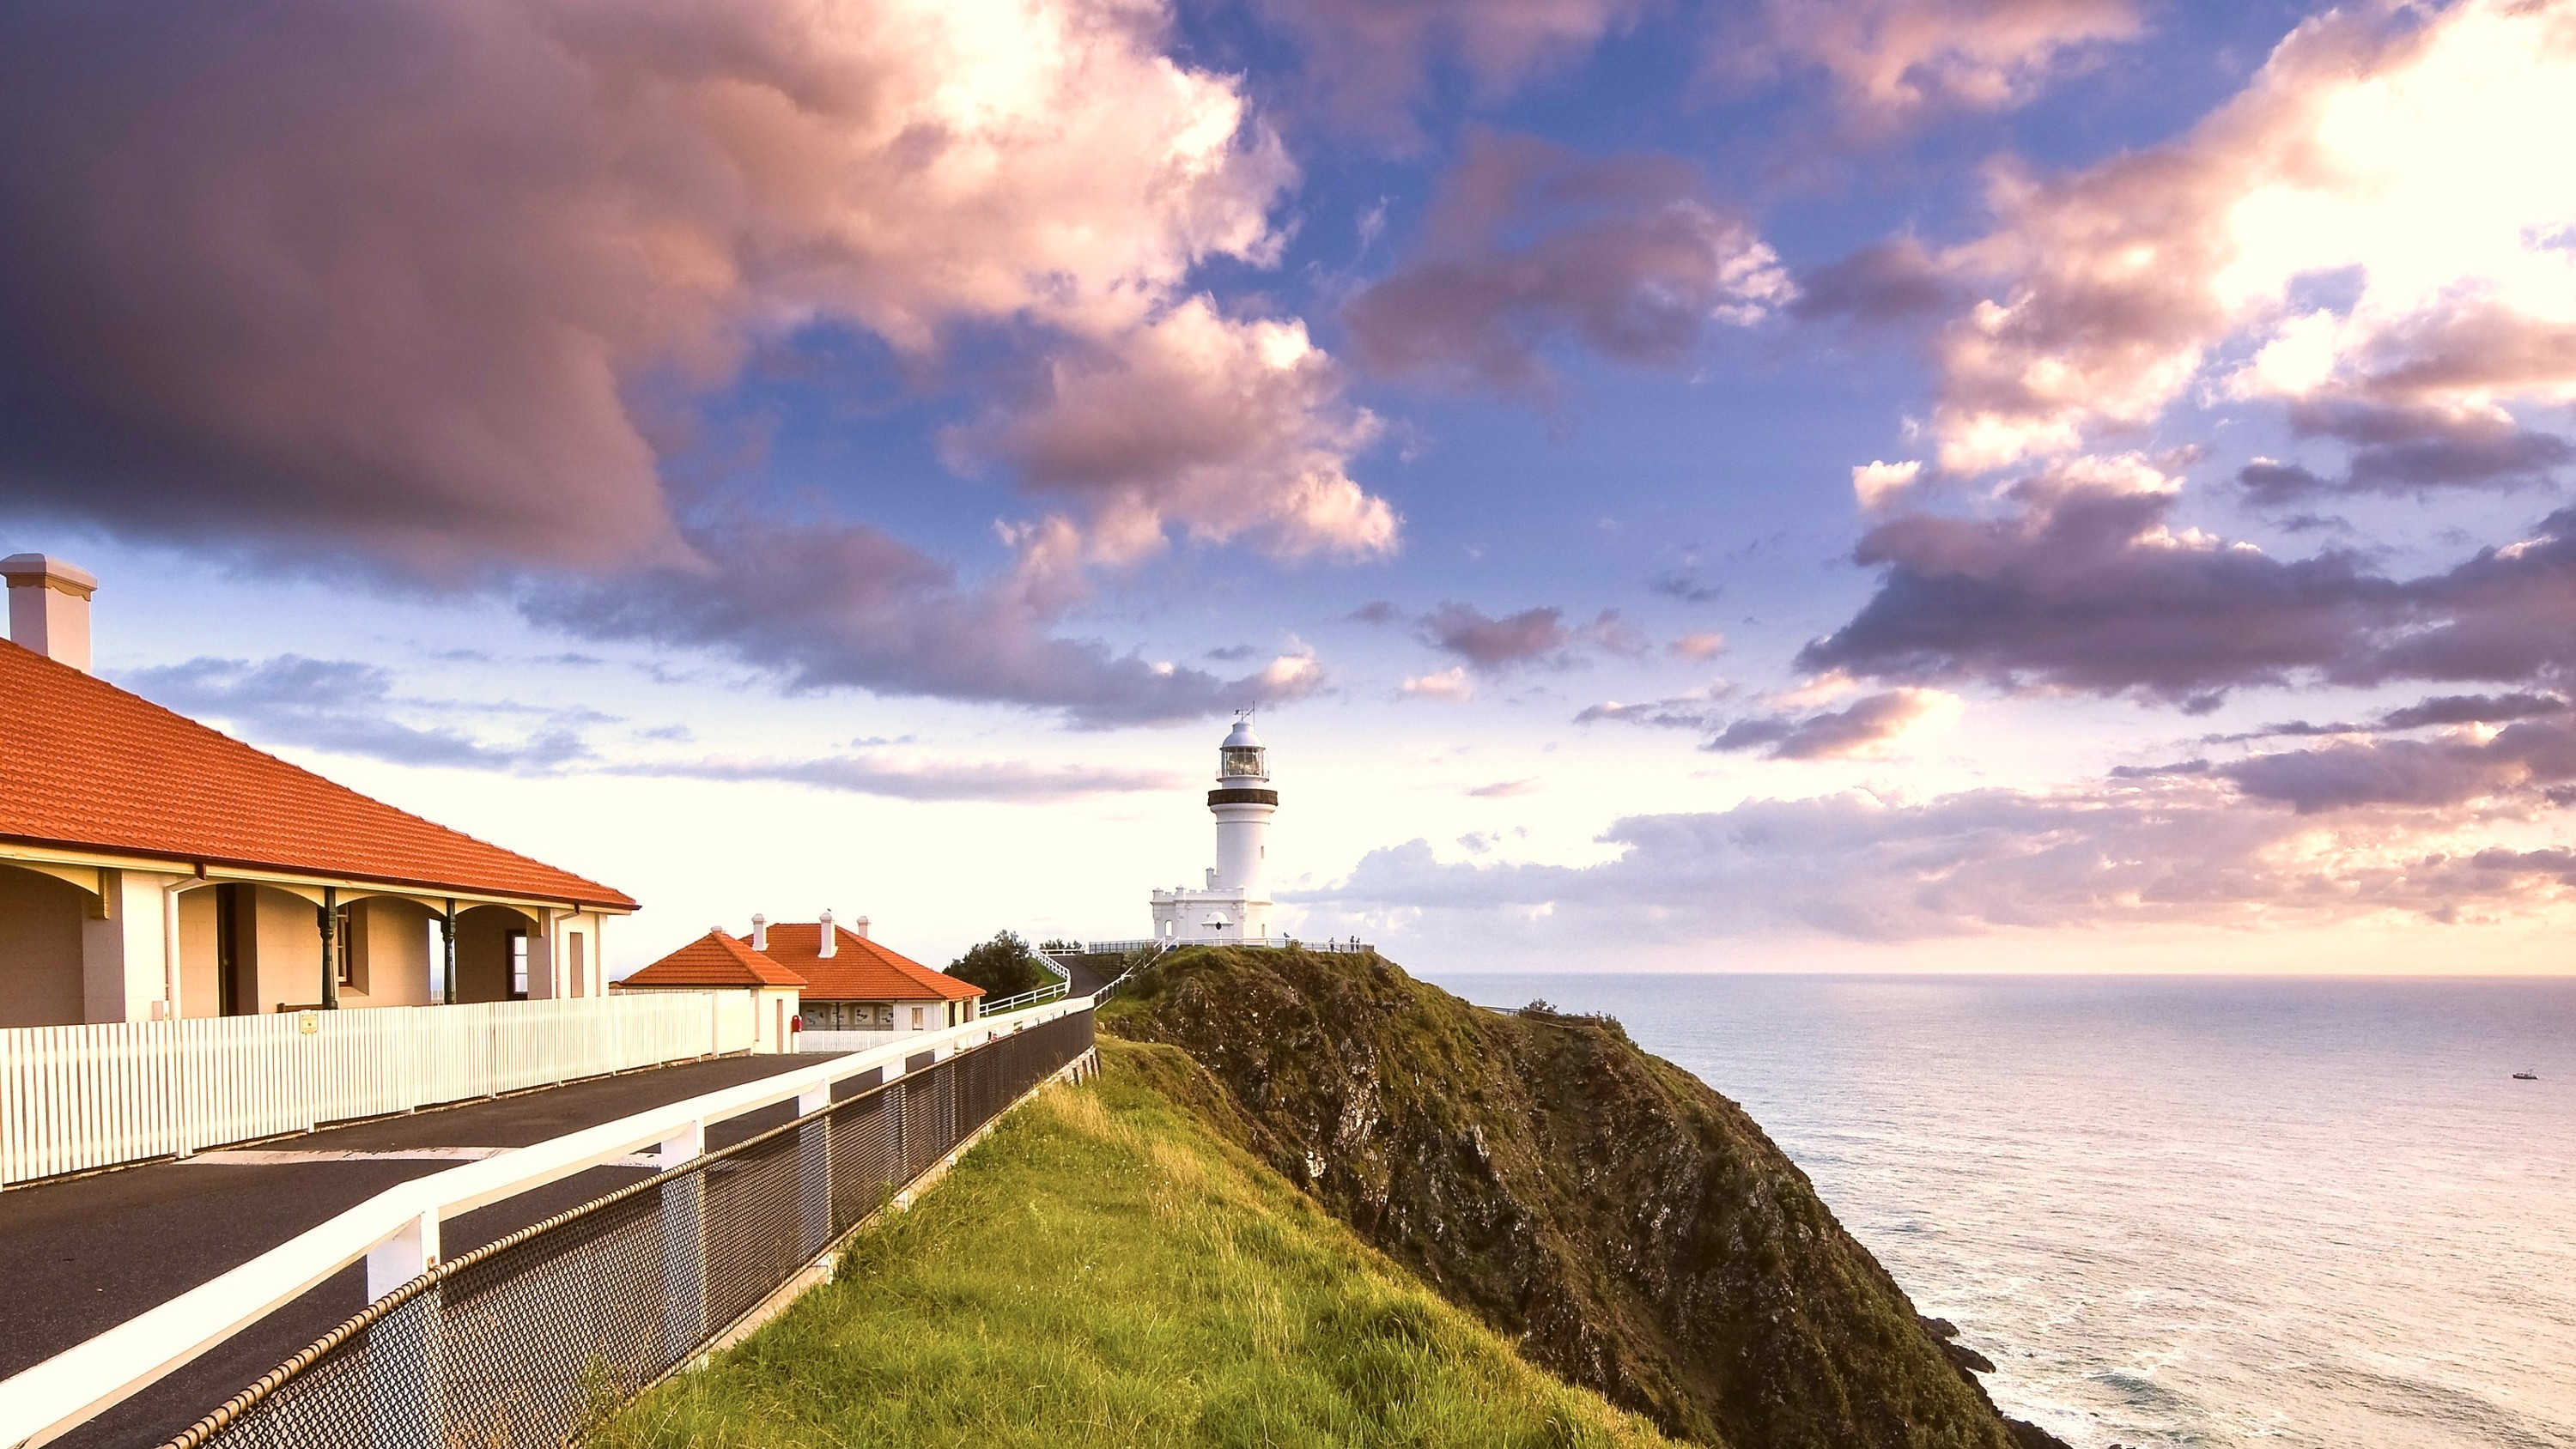 Cottage next to lighthouse by the sea